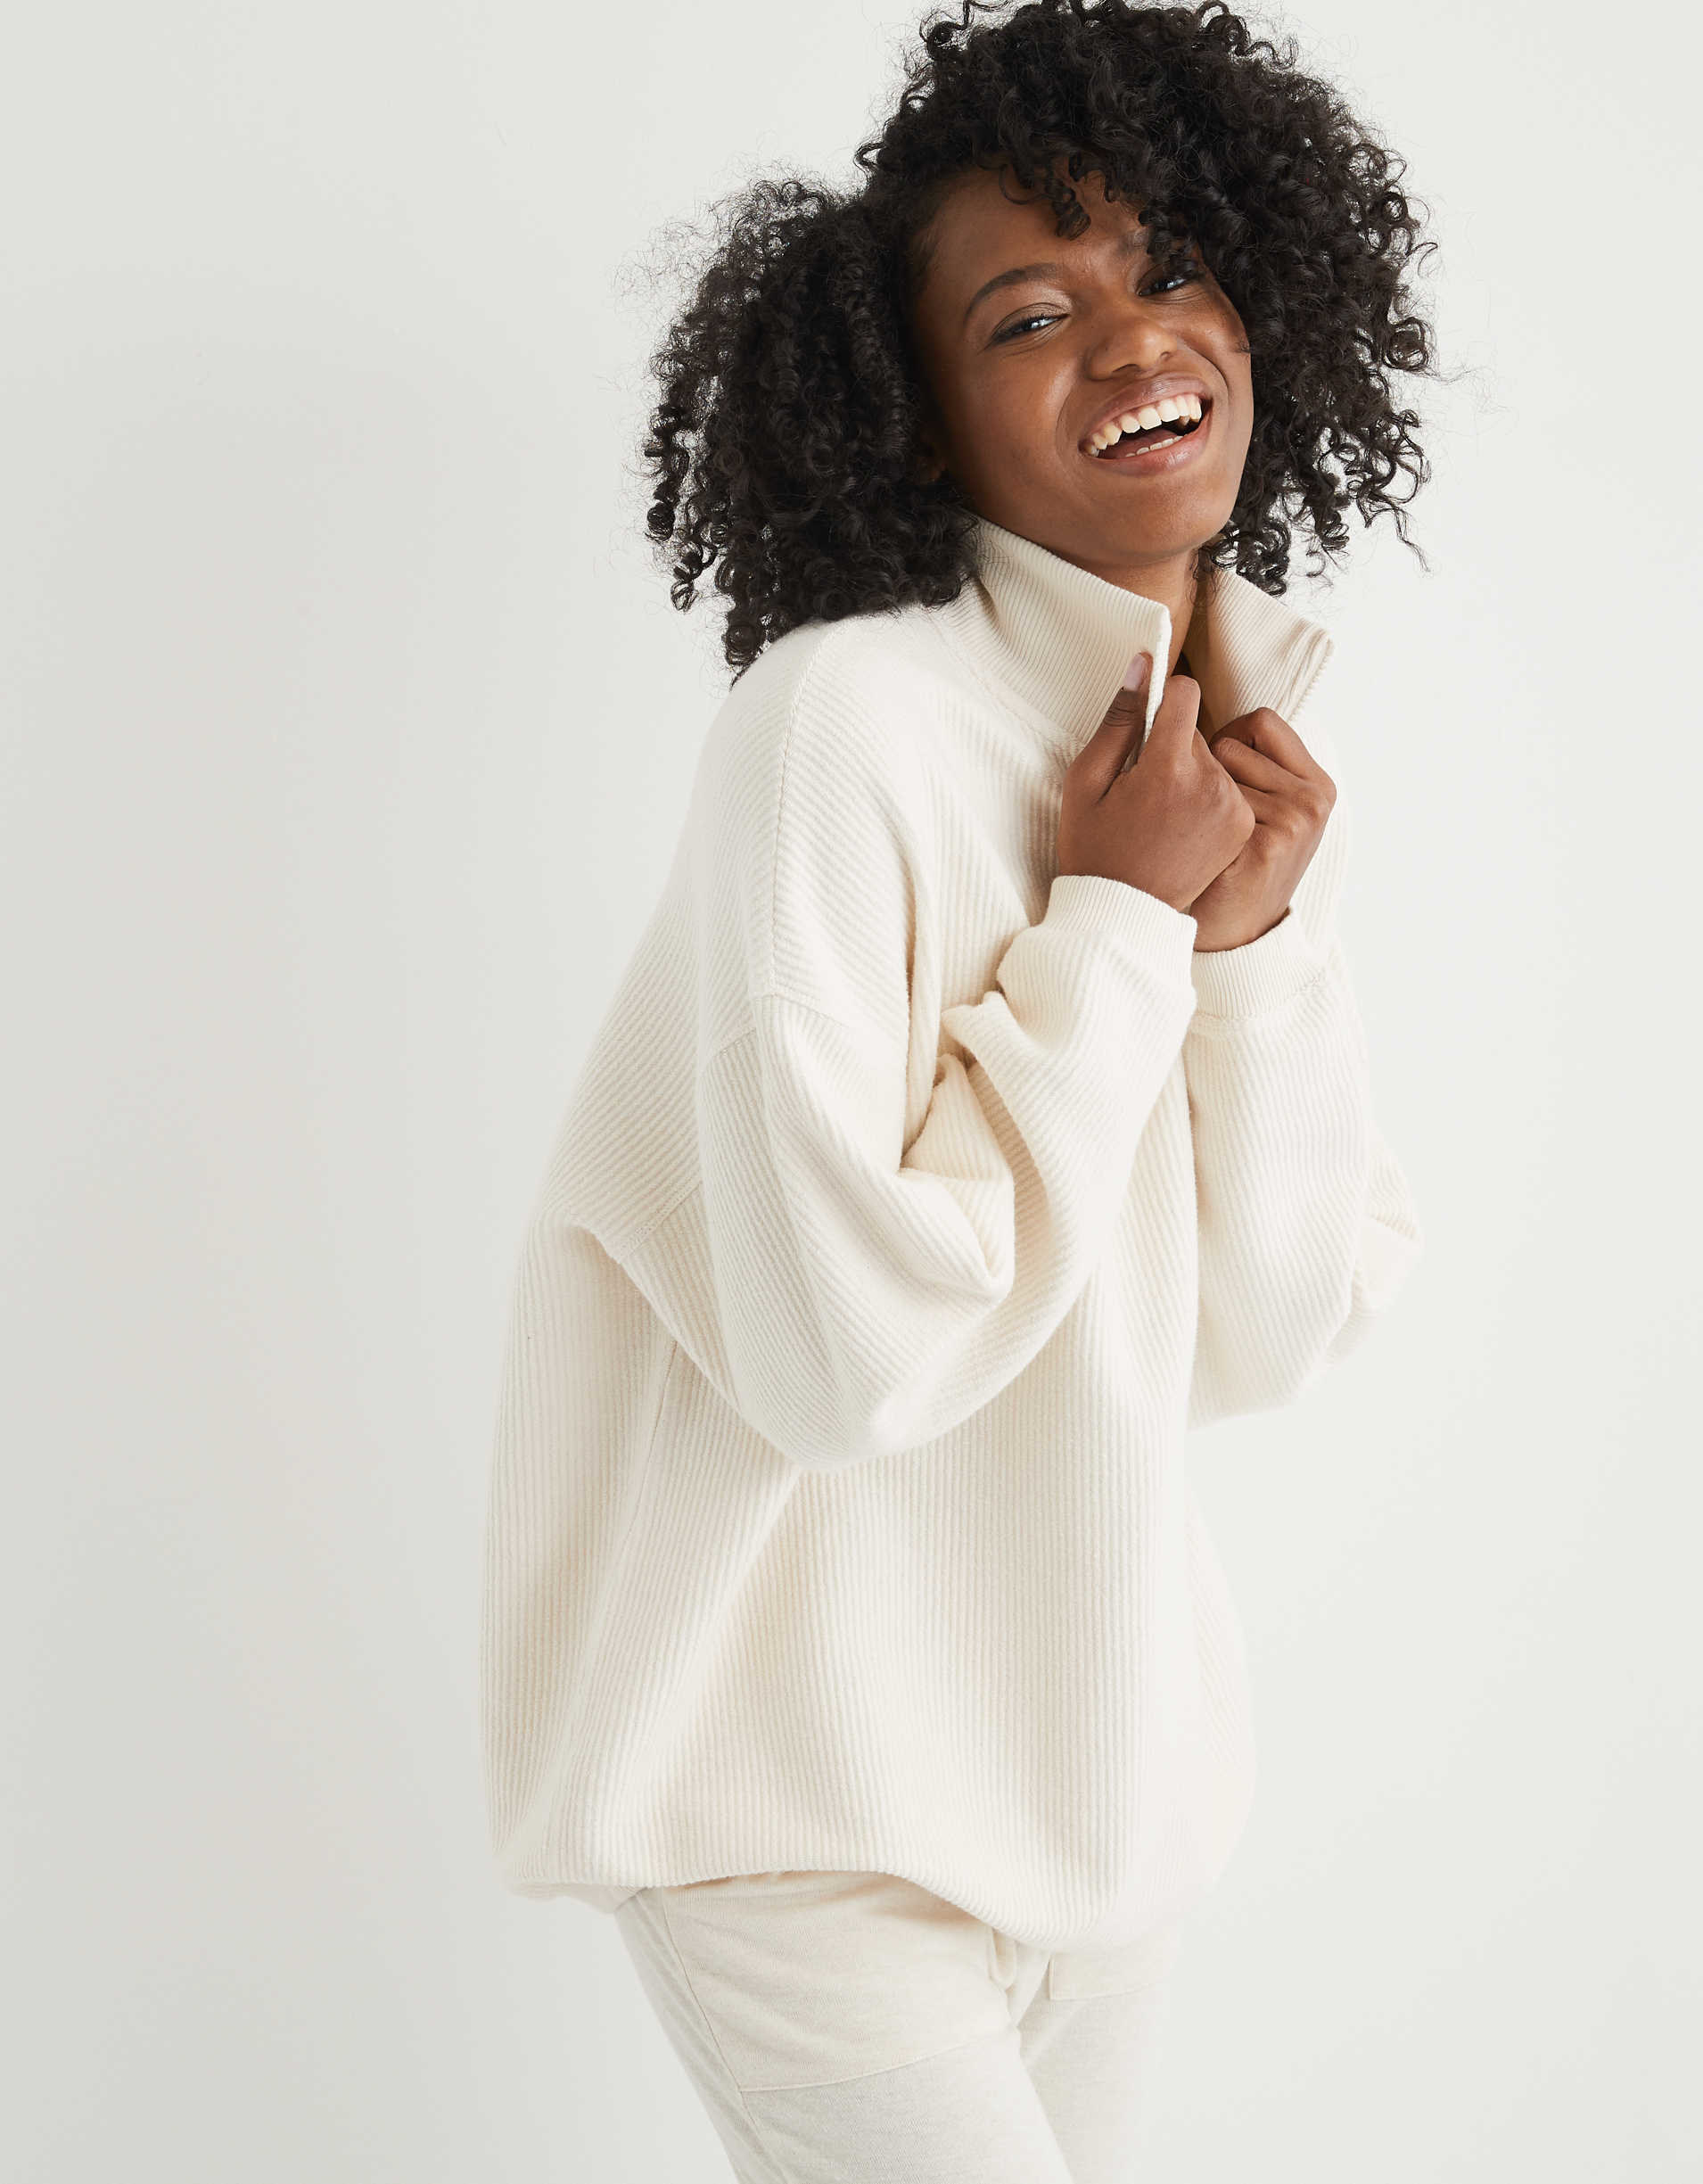 Model wearing the sweater in white